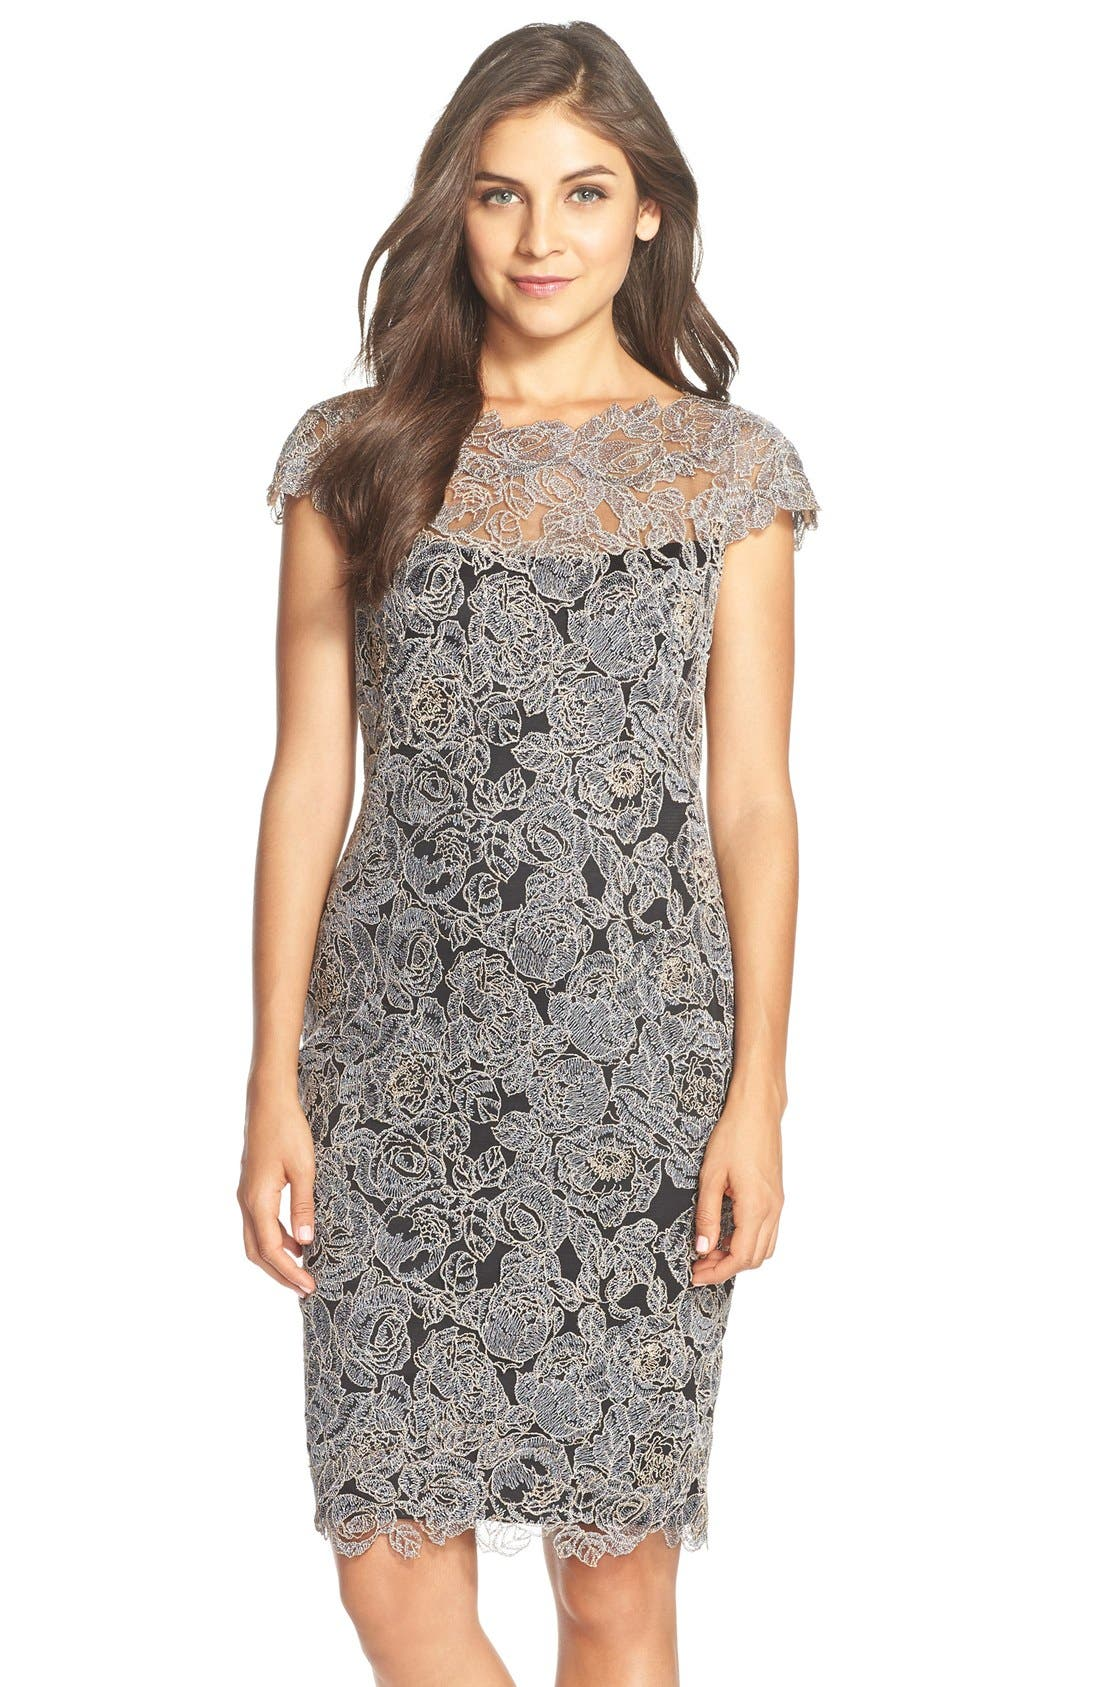 Embroidered Mesh Sheath Dress,                         Main,                         color, Steel Shadow/Black